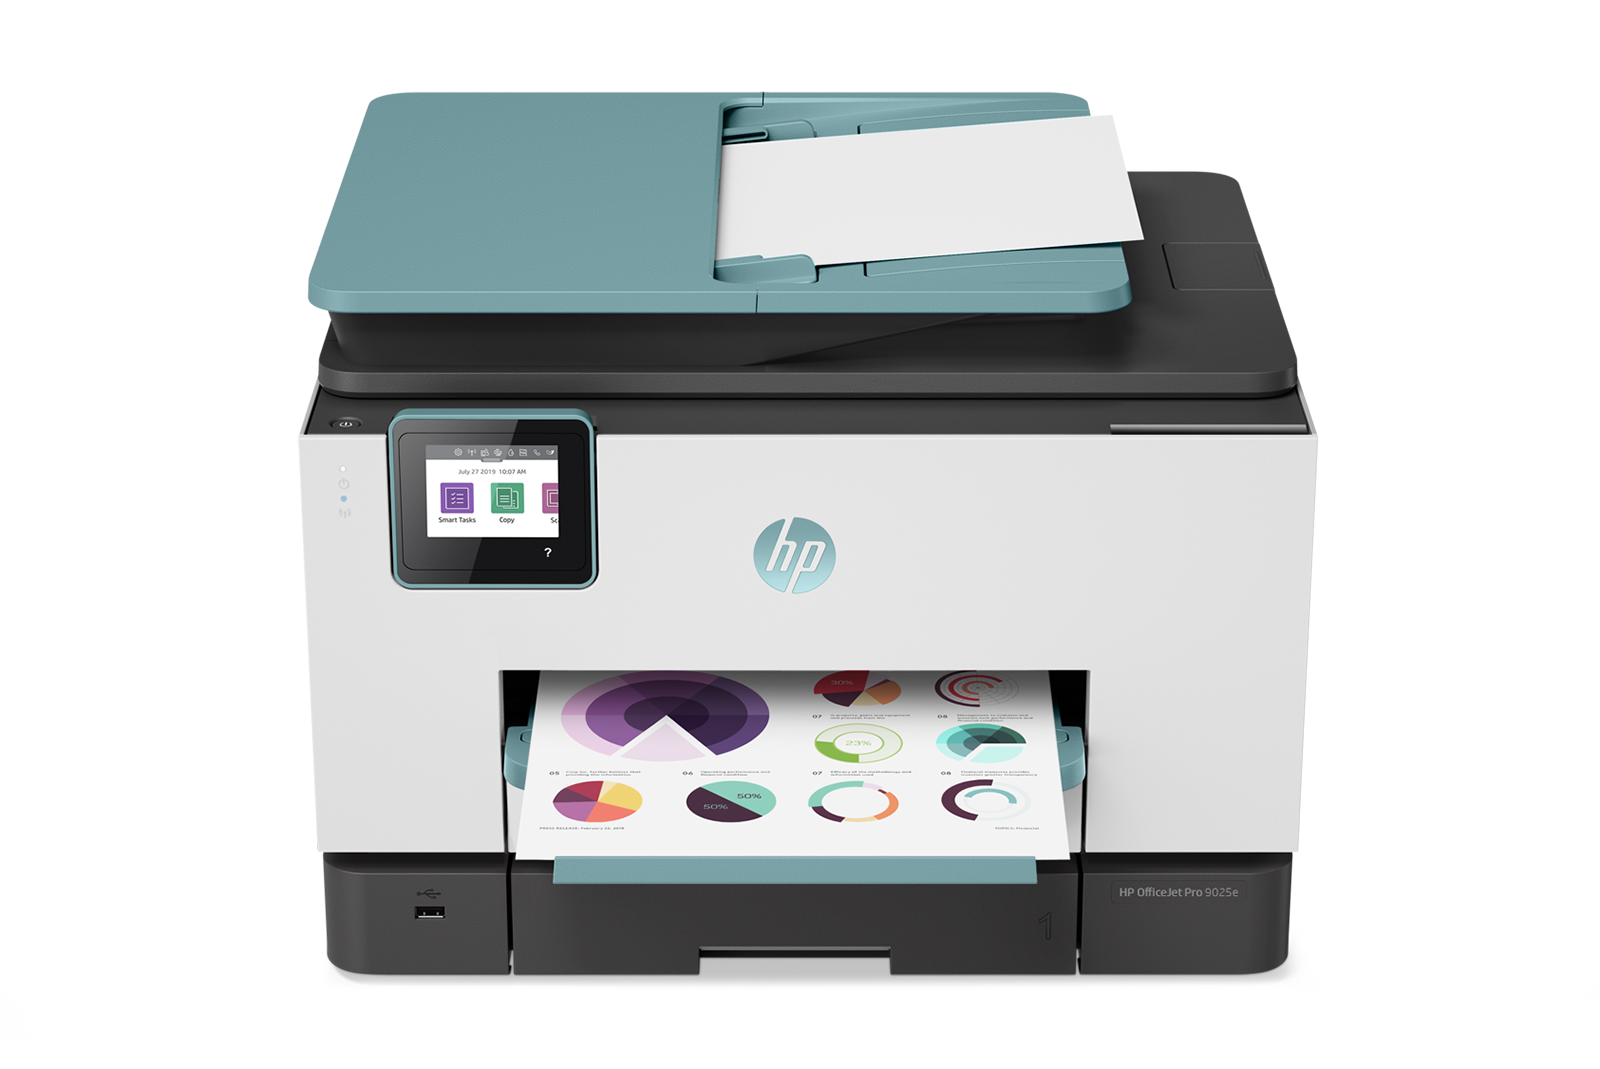 best-inkjet-printer-officejet-pro-9025e-2.png